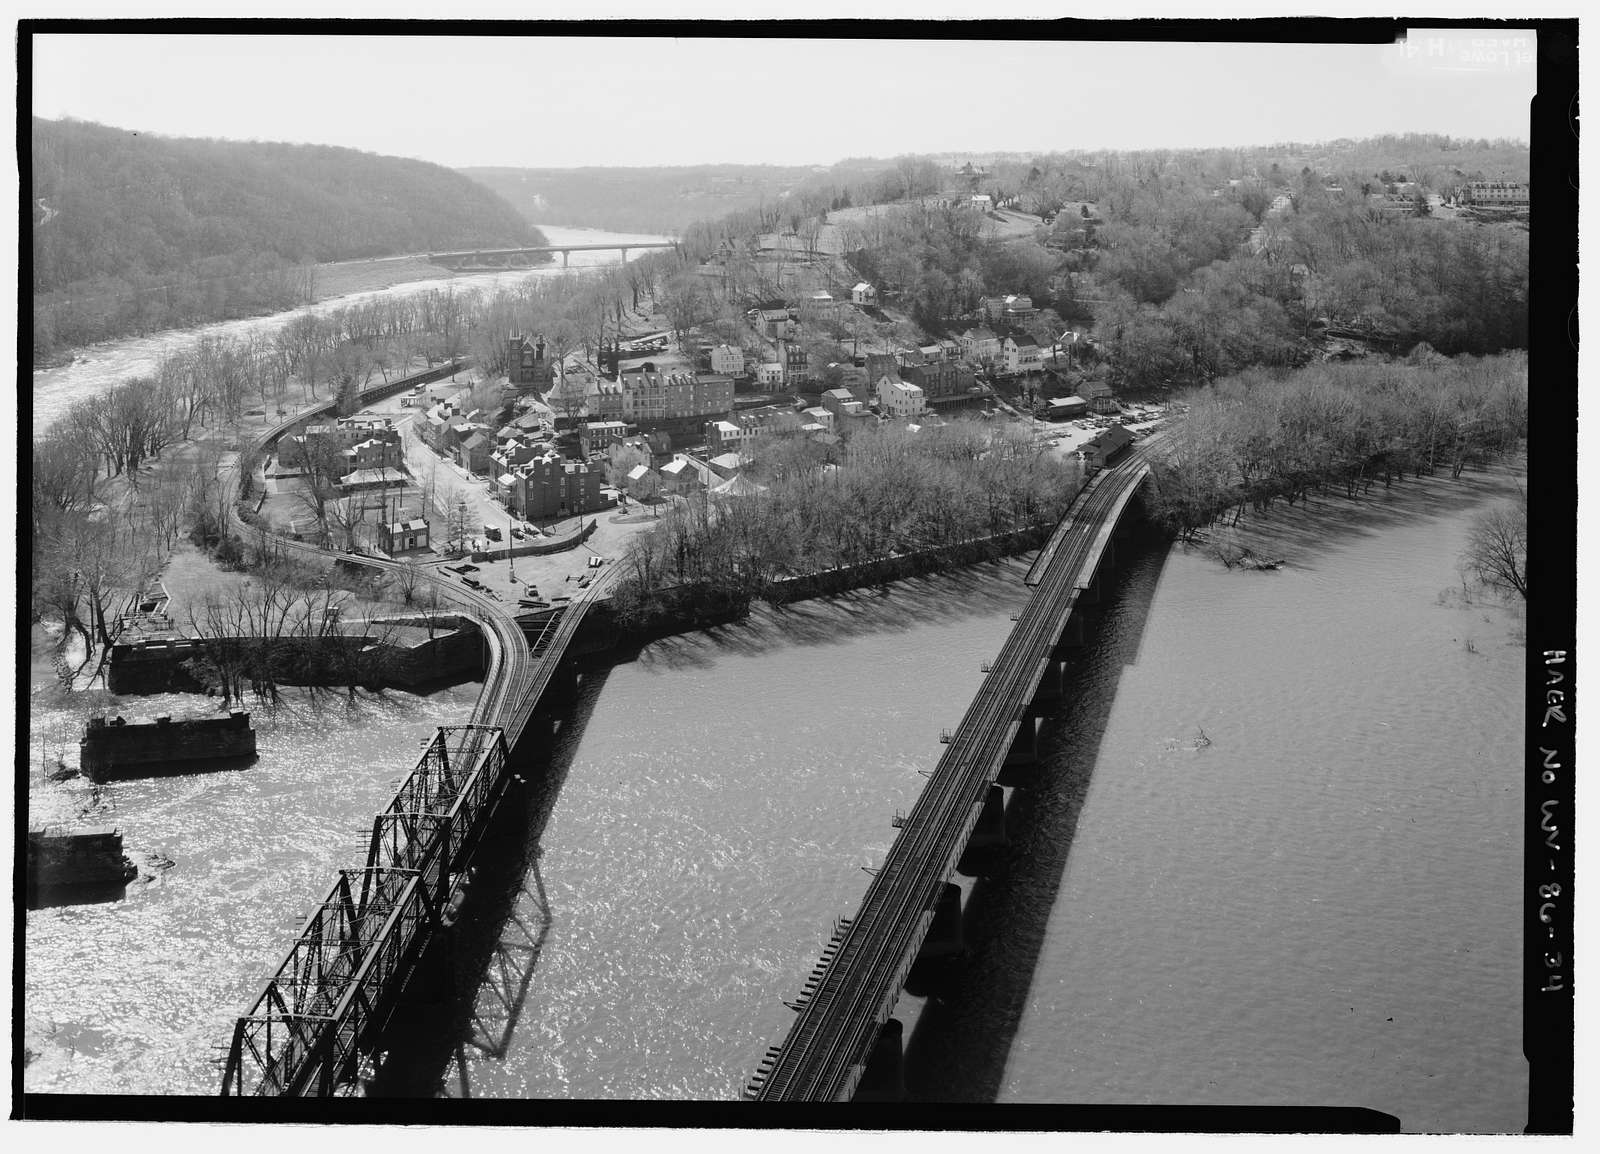 Baltimore & Ohio Railroad, Harpers Ferry Station, Potomac Street, Harpers Ferry, Jefferson County, WV